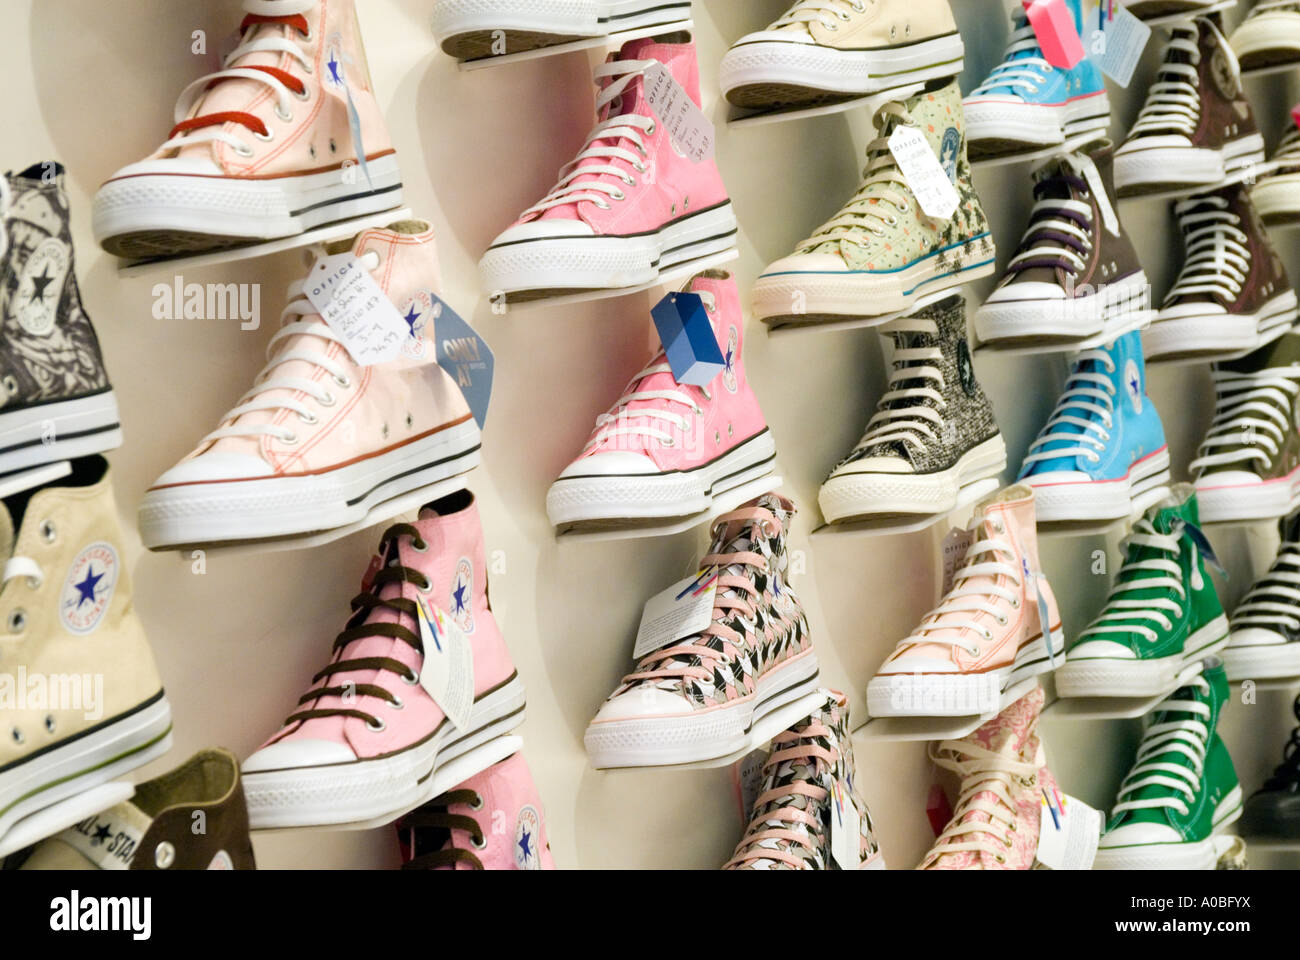 converse all star shoes store